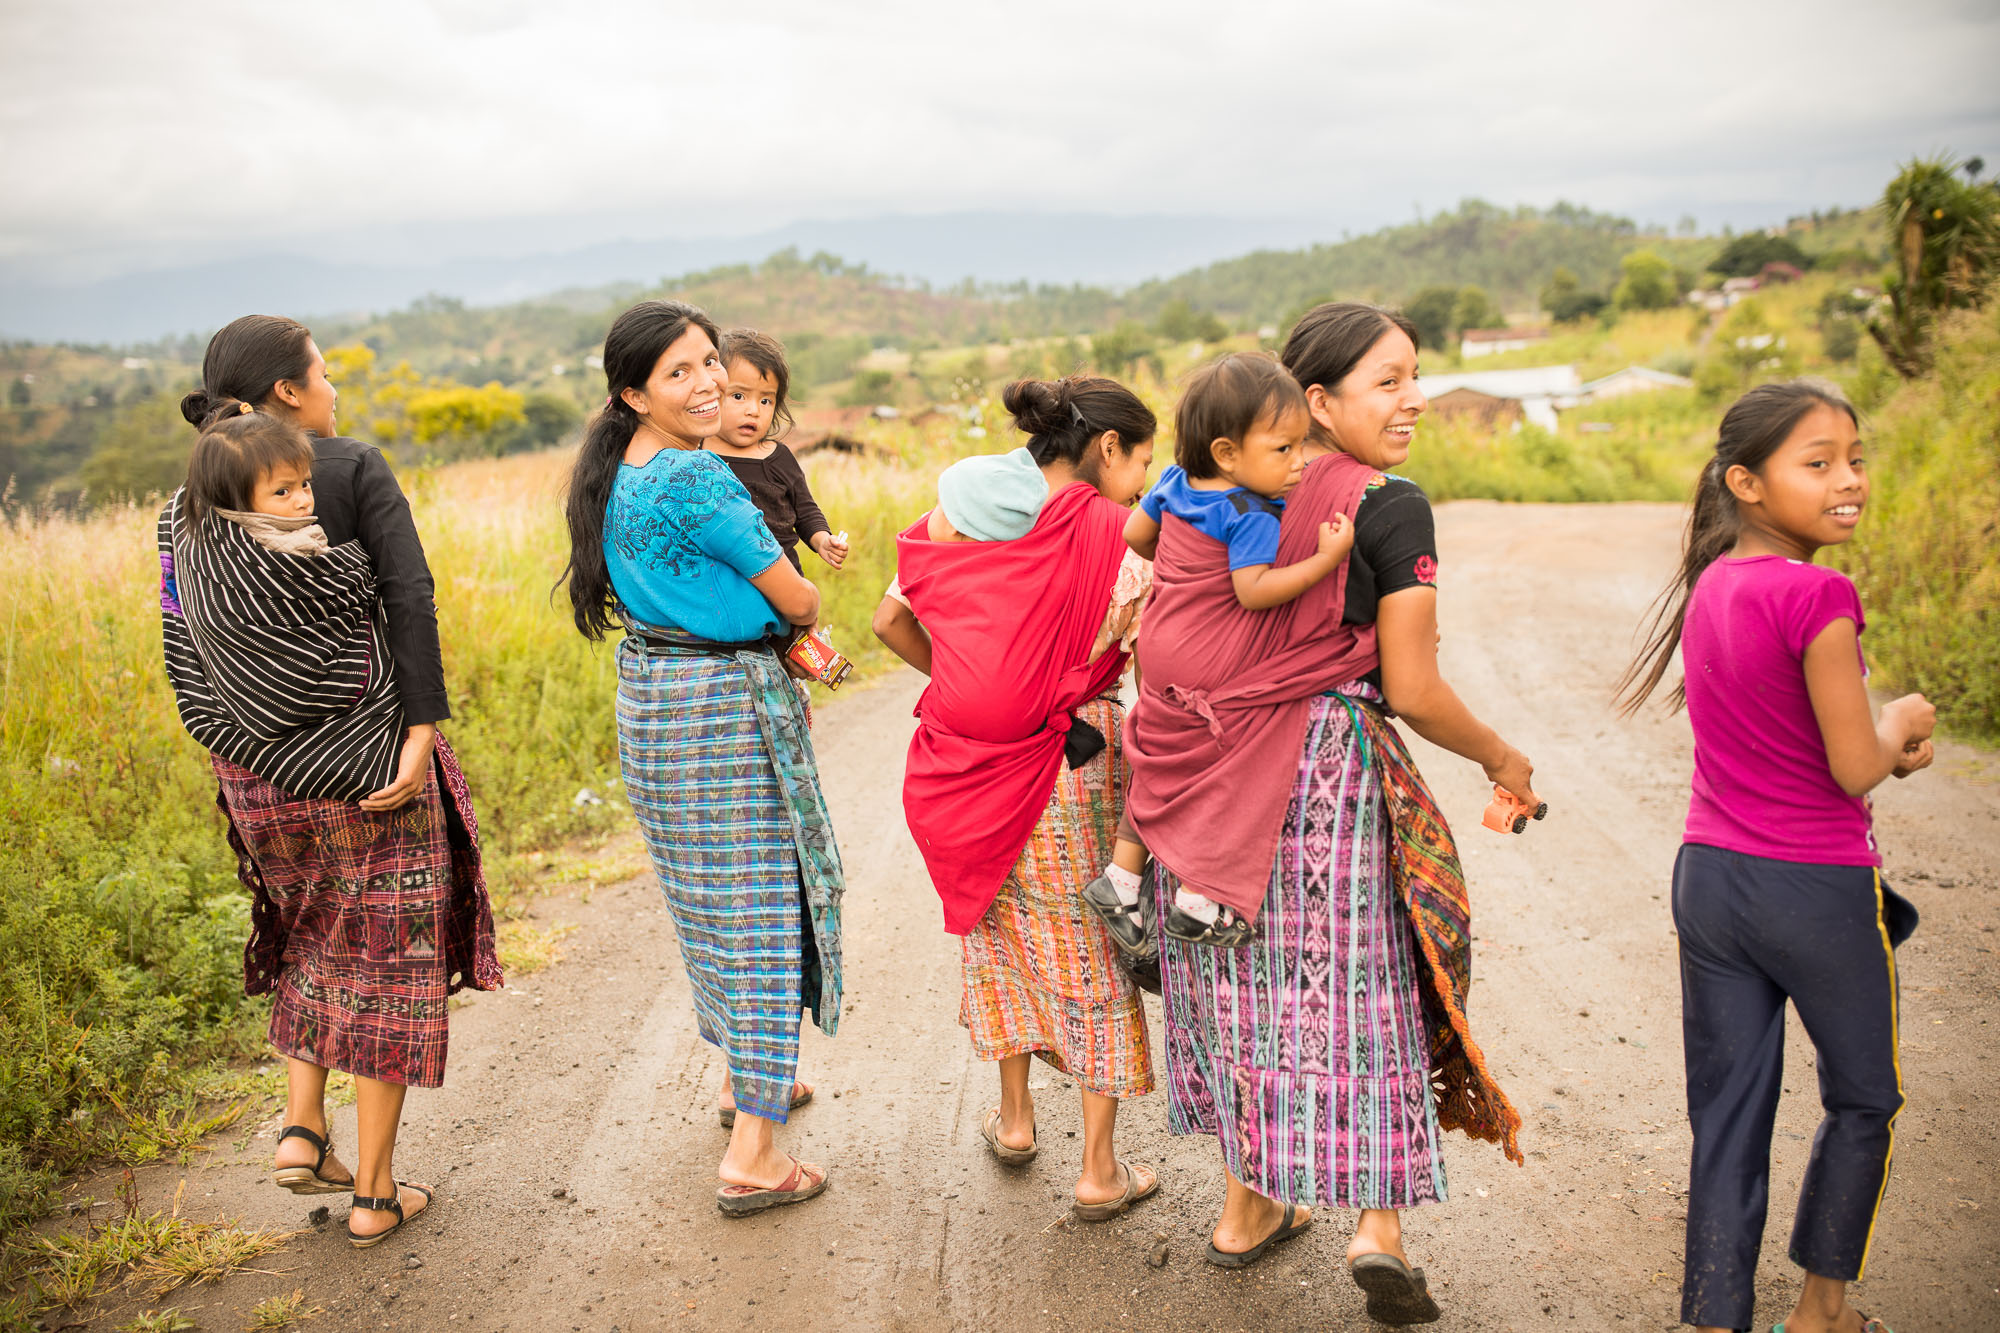 Mothers walk along a rural road with their children in Totonicapán Department, Guatemala.